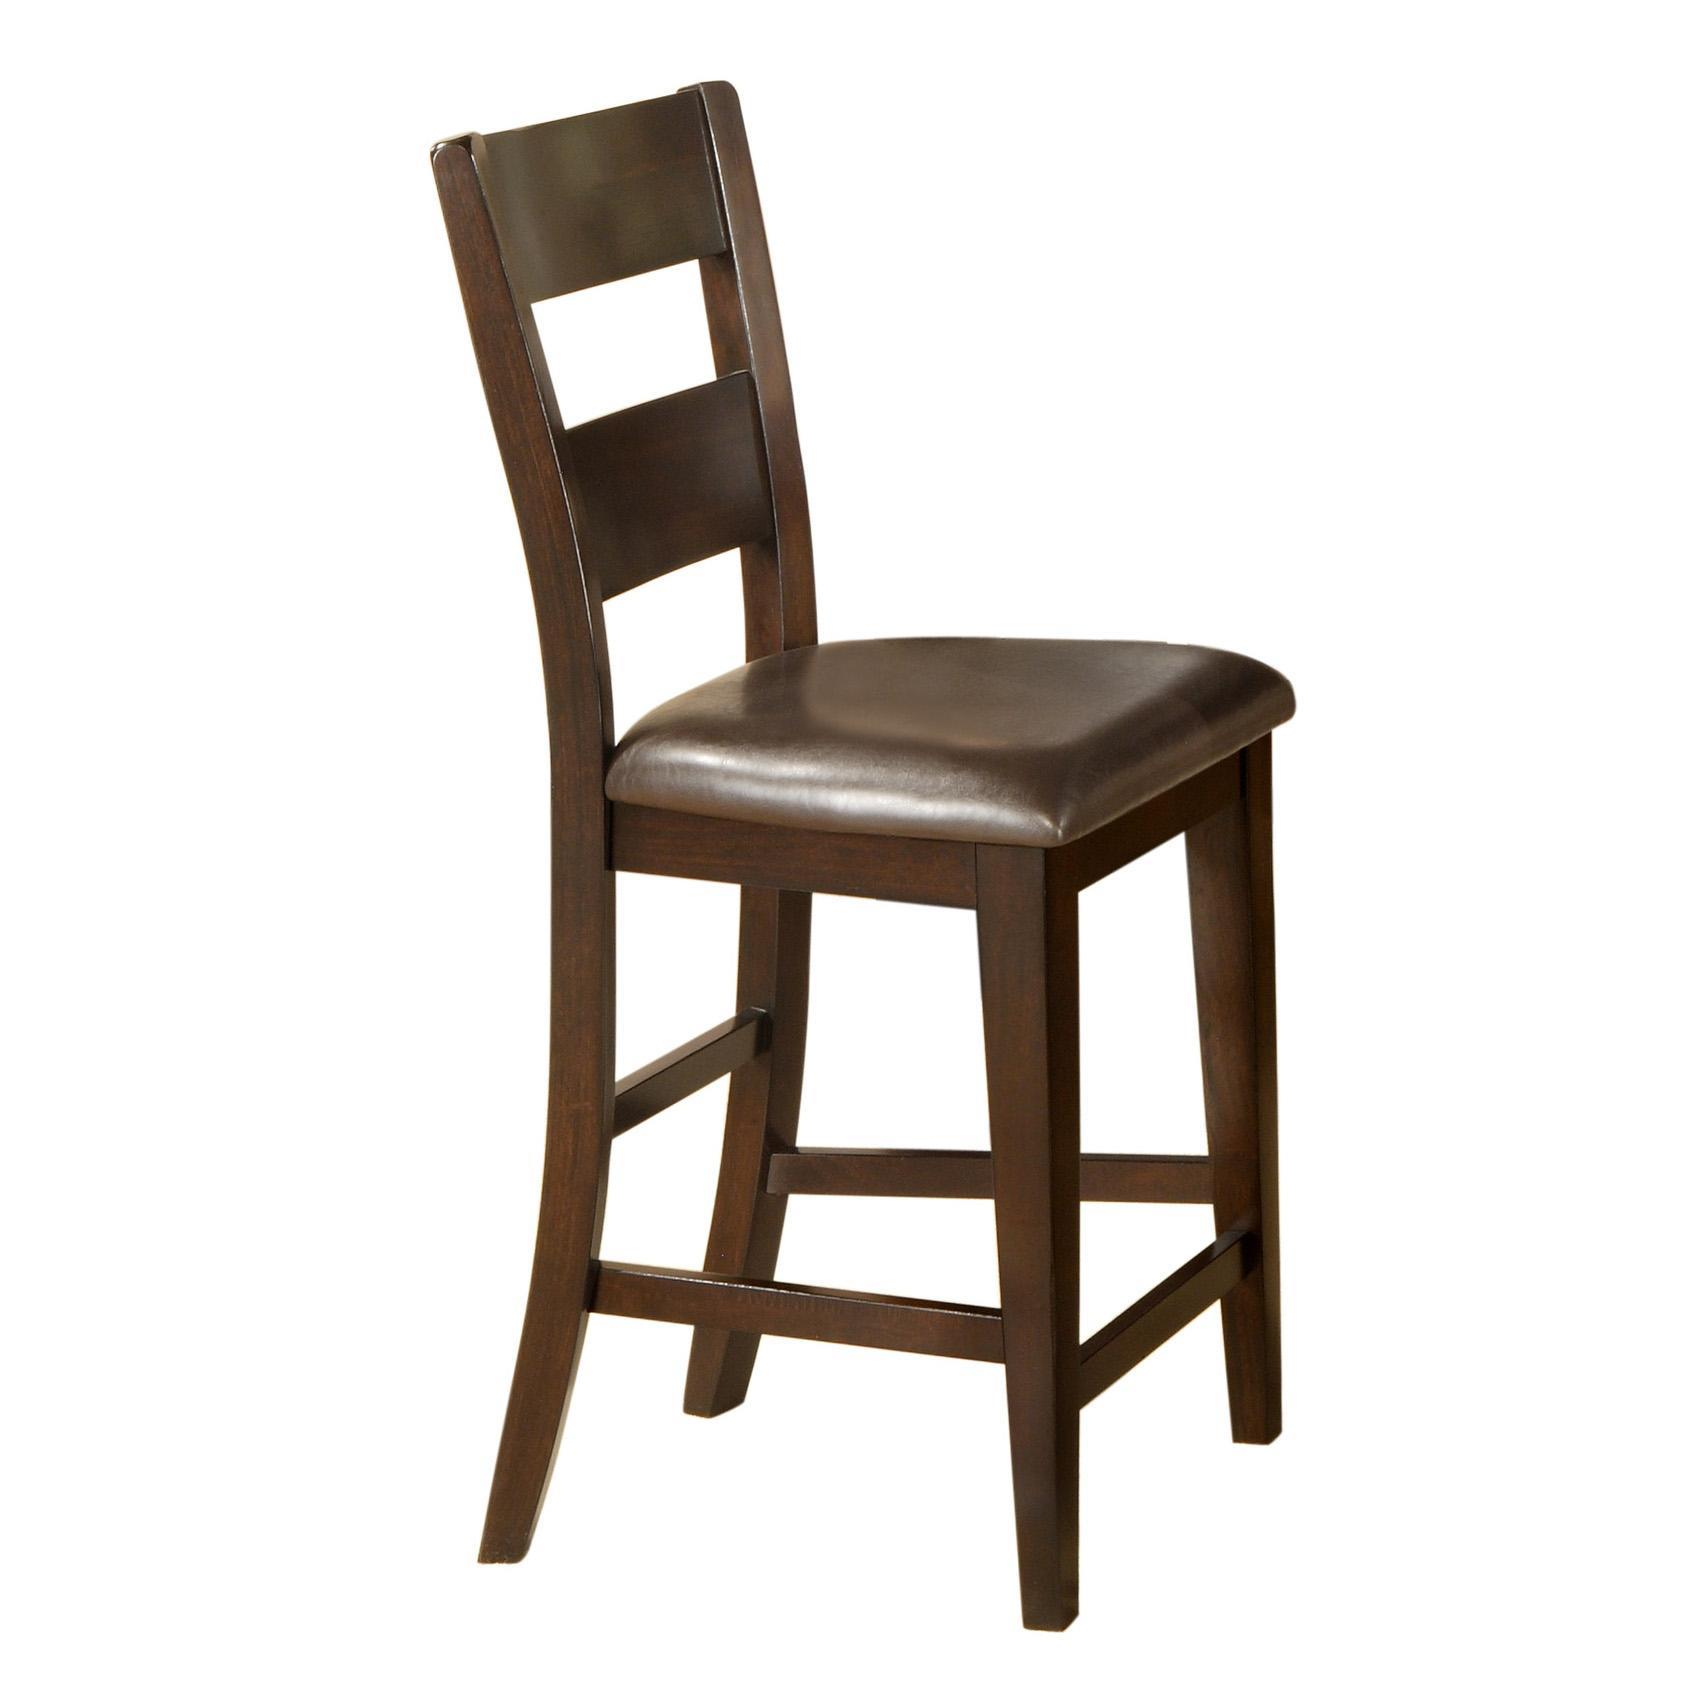 Melbourne ladder back pub barstool morris home bar stools Morris home furniture hours